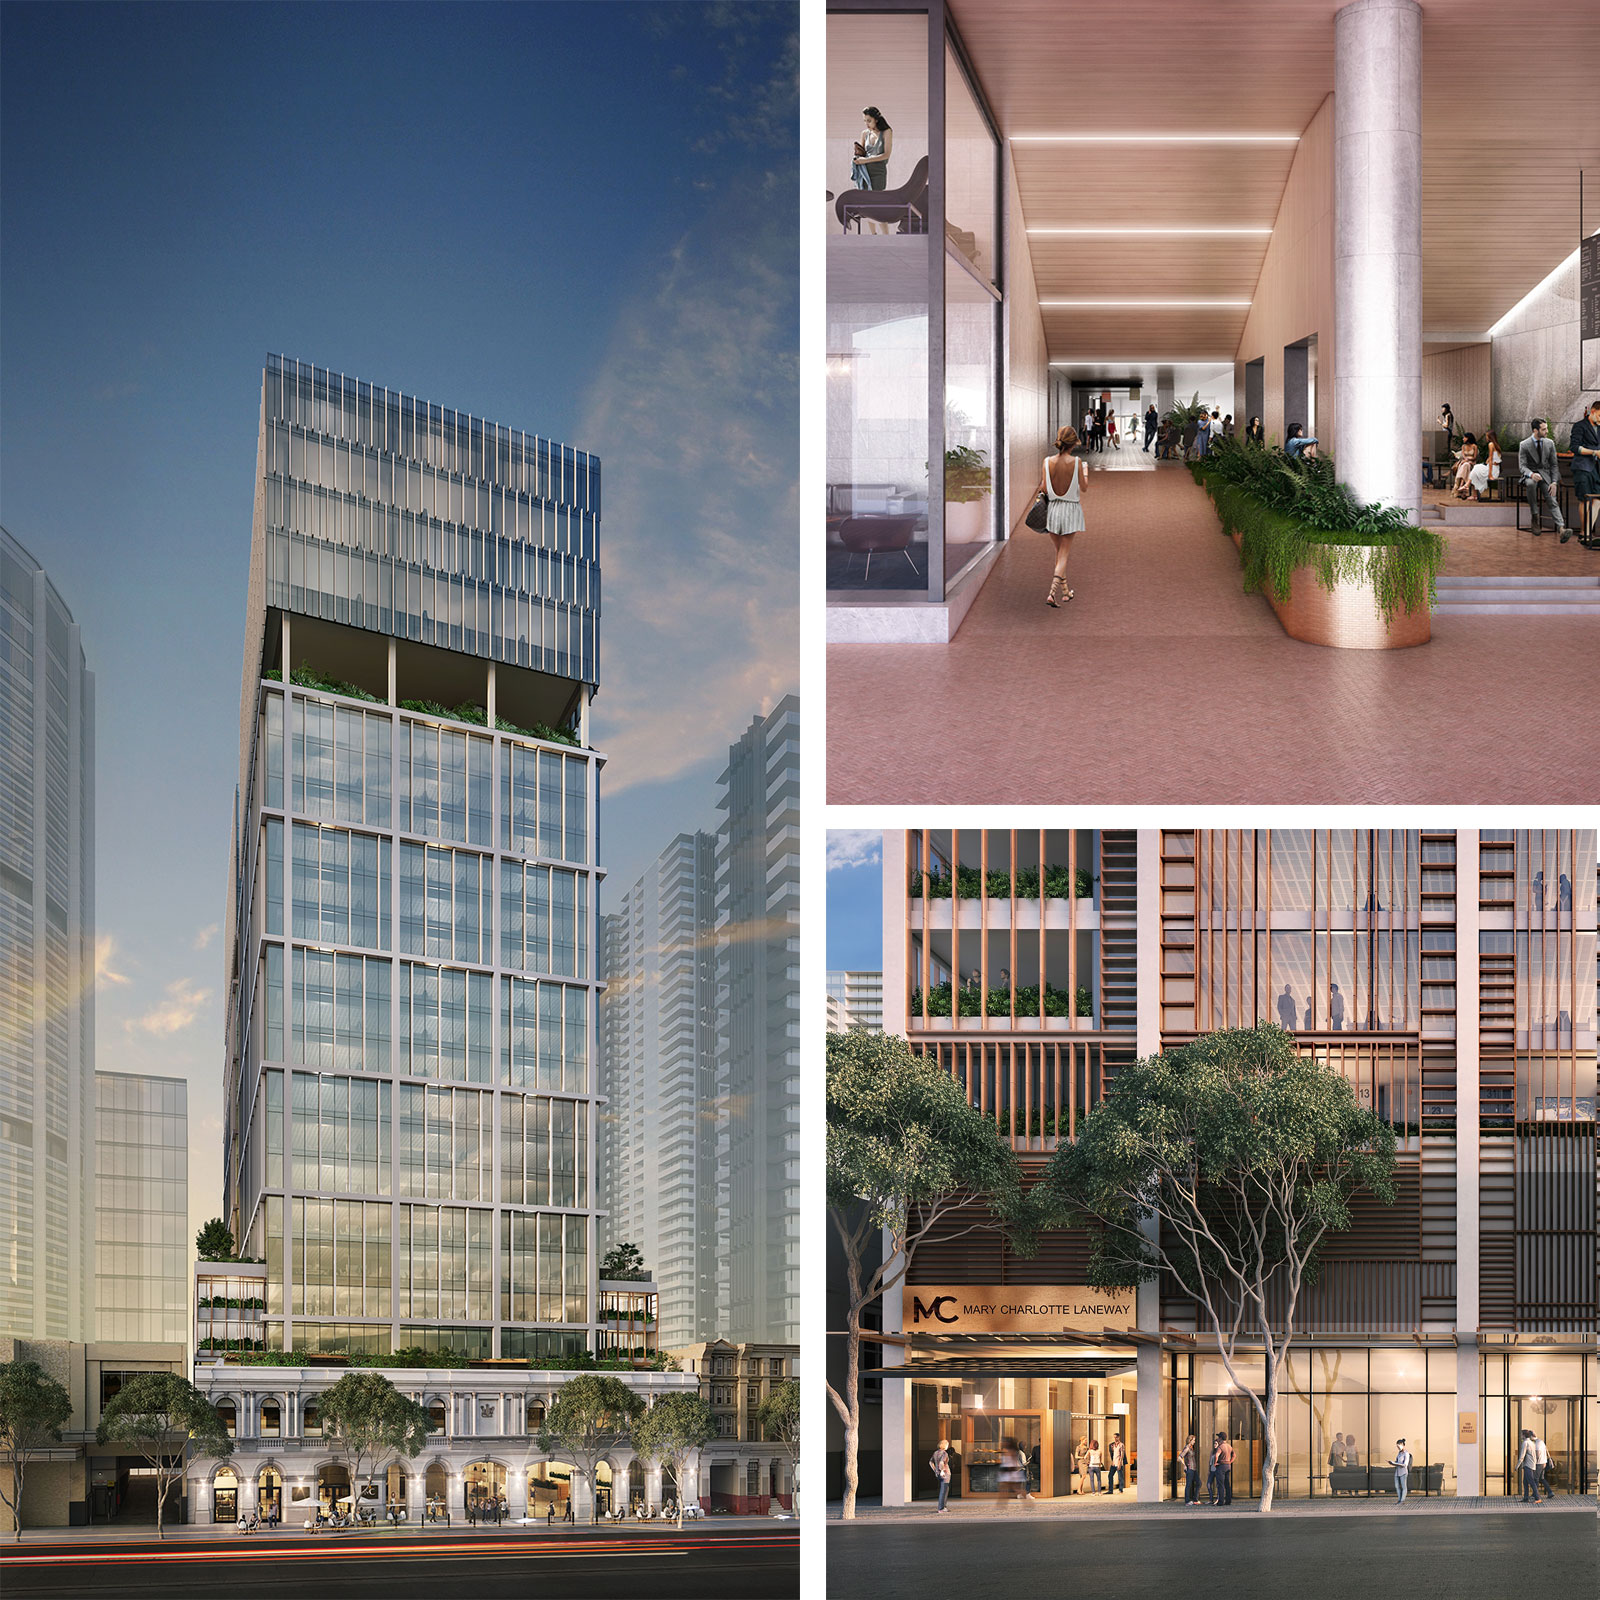 Rio Tinto has signed a 10-year lease agreement for 19,564 square metres of office space.